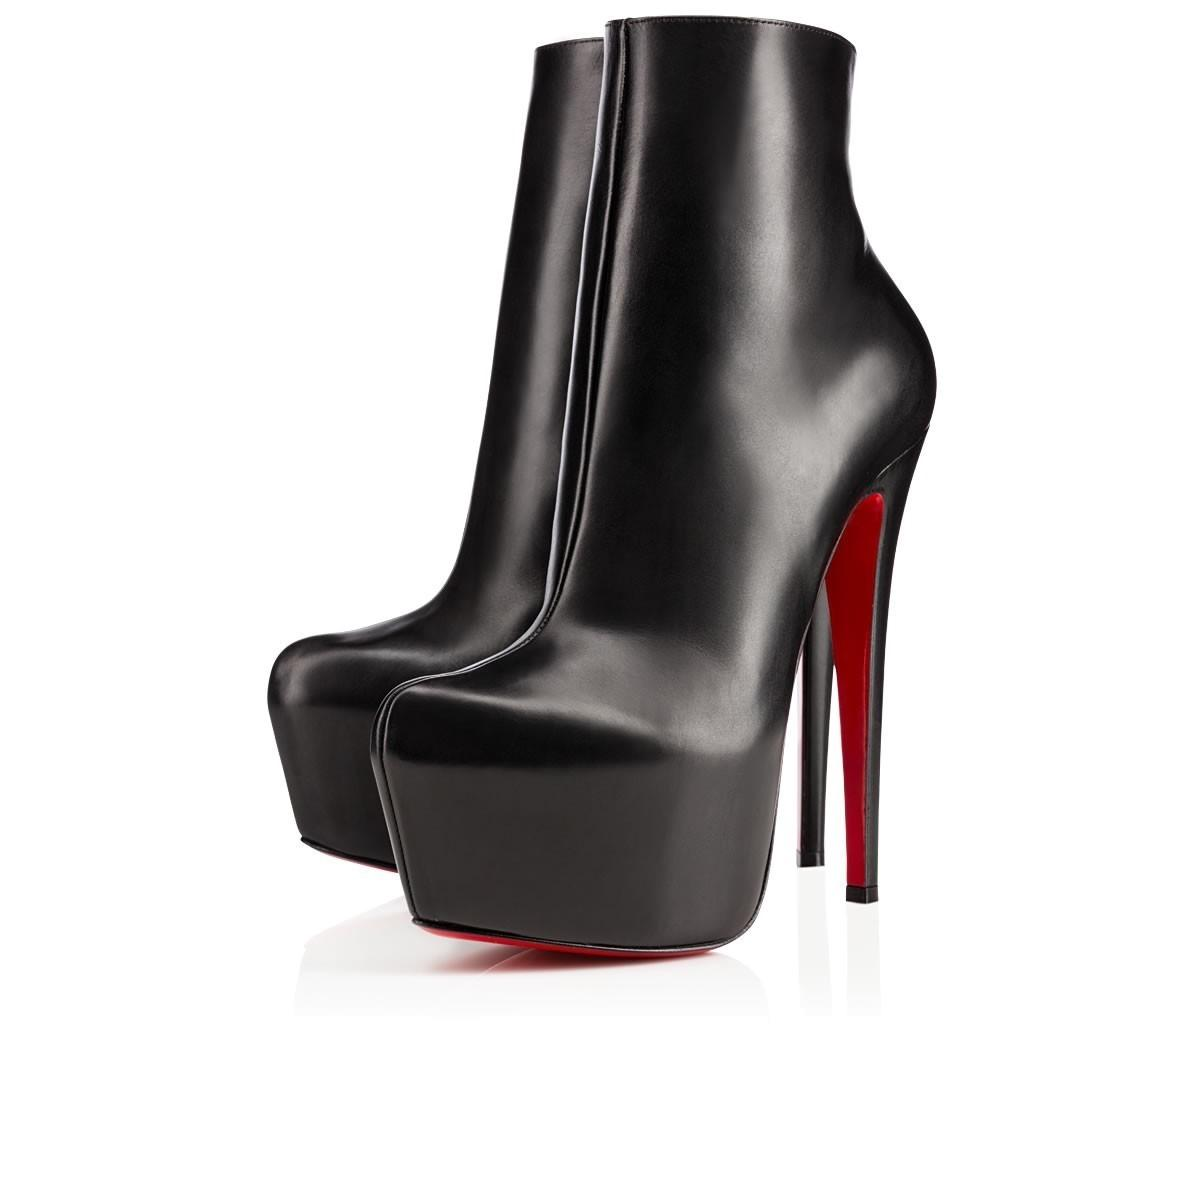 Christian Louboutin Black Leather Daf Ankle Boots/Booties Size US 9 Regular (M, B)